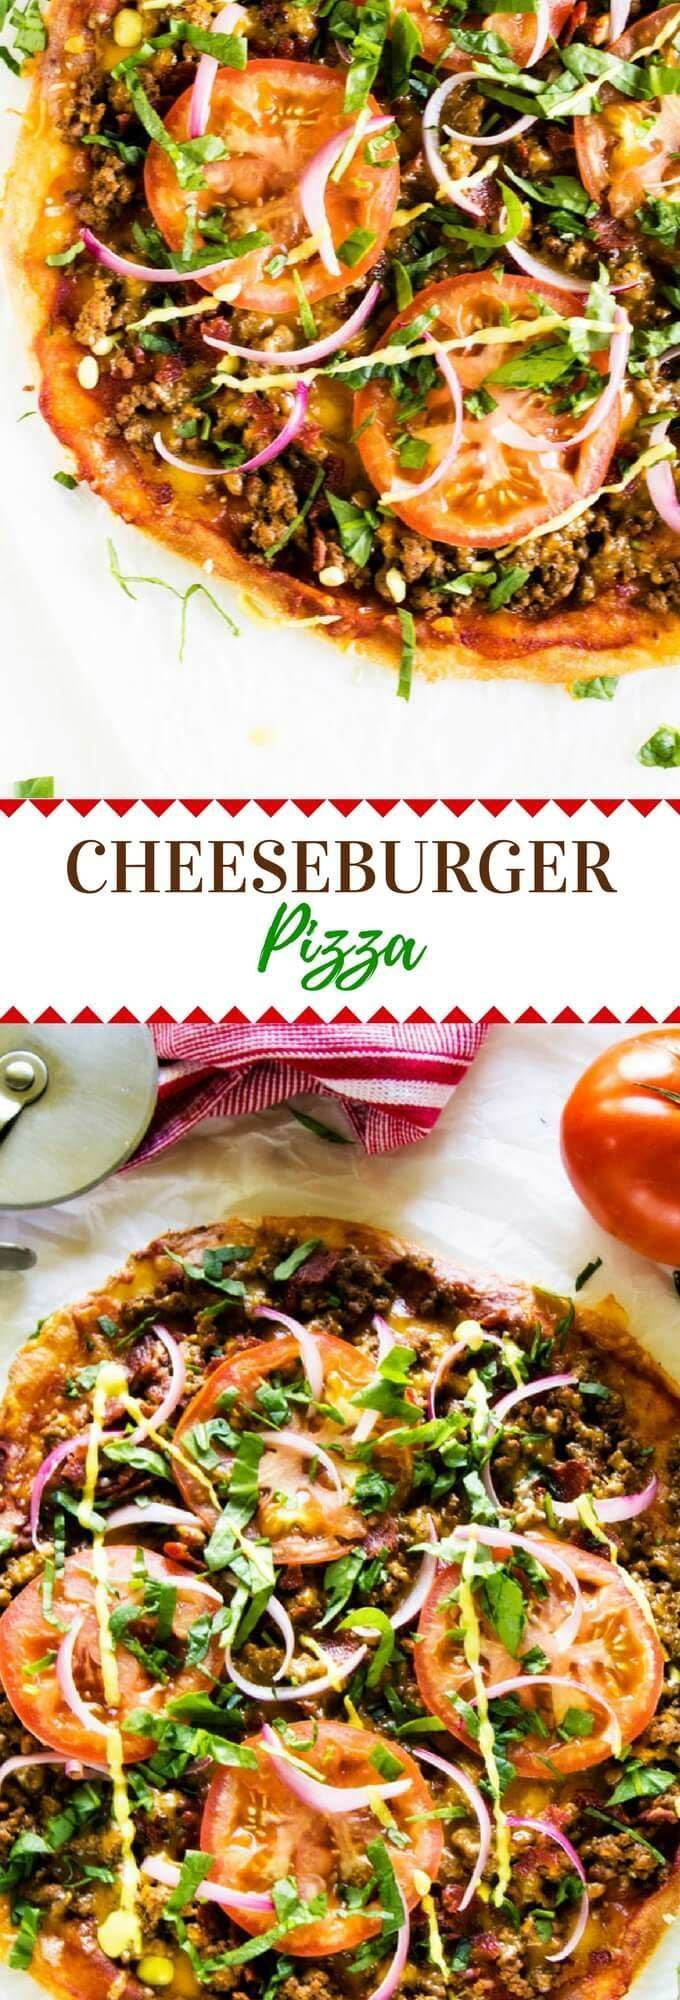 Mix up your pizza night with this Bacon Cheeseburger Pizza recipe.  It is the perfect blend of two favorites.  This pizza is one the whole family will love. Use Cauliflower Crust or Fathead Pizza Dough for a low carb or Keto option. via @wendypolisi